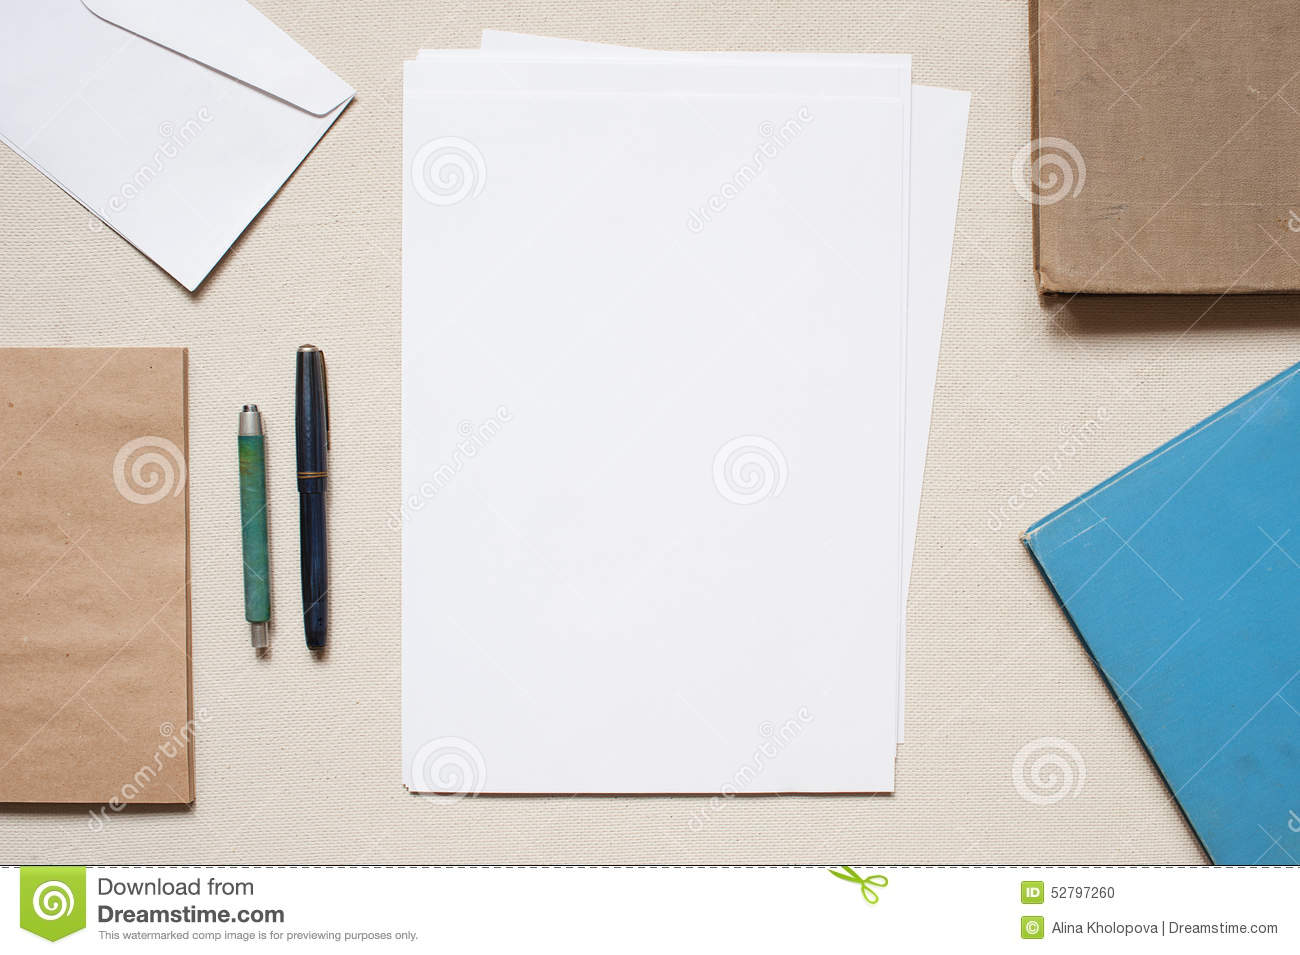 Empty envelopes and sheets of paper on the table